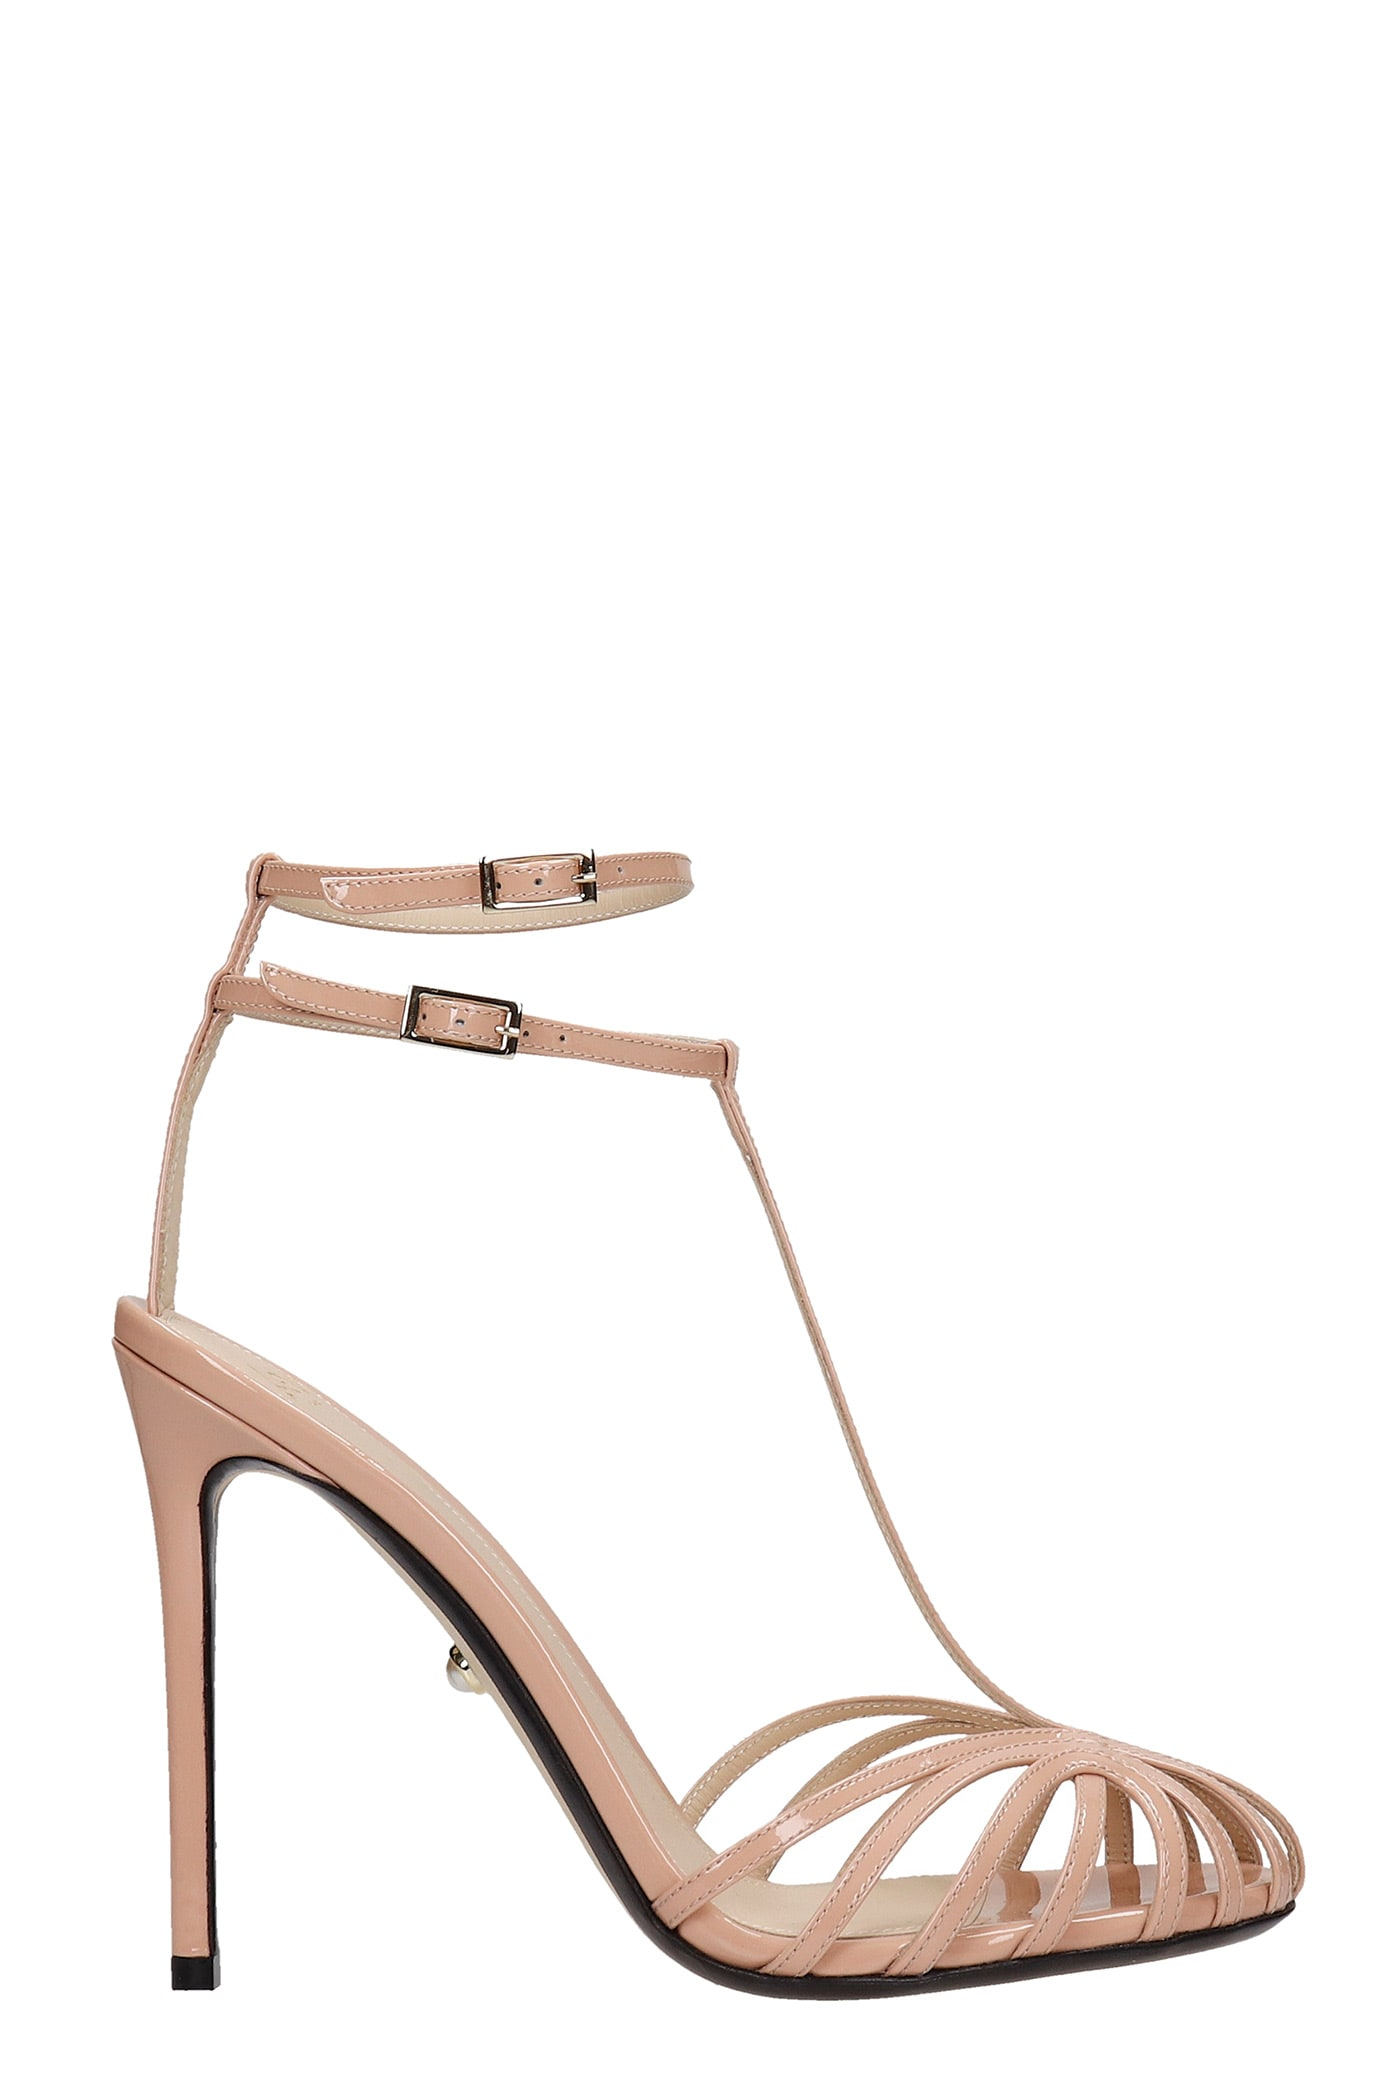 Alevì Sky highs STELLA 110 SANDALS IN POWDER PATENT LEATHER